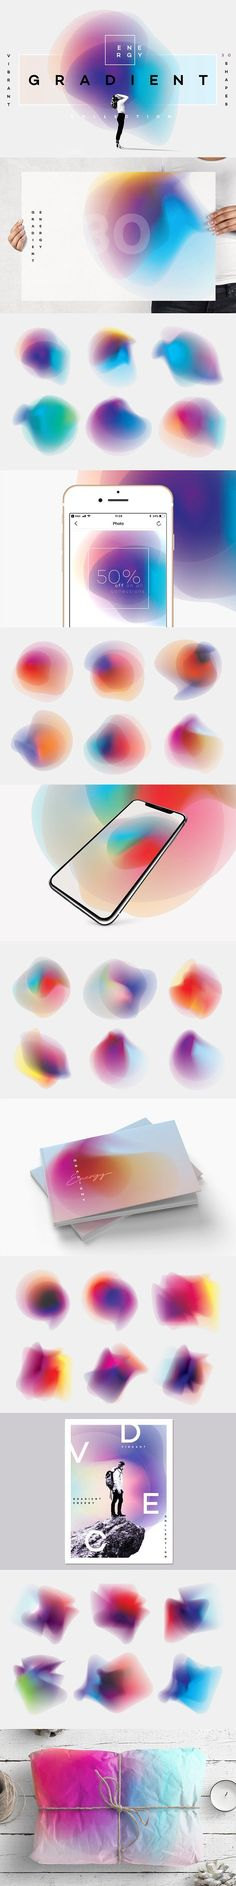 Gradient Energy- 30 vibrant shapes by Polar Vectors on @creativemarket